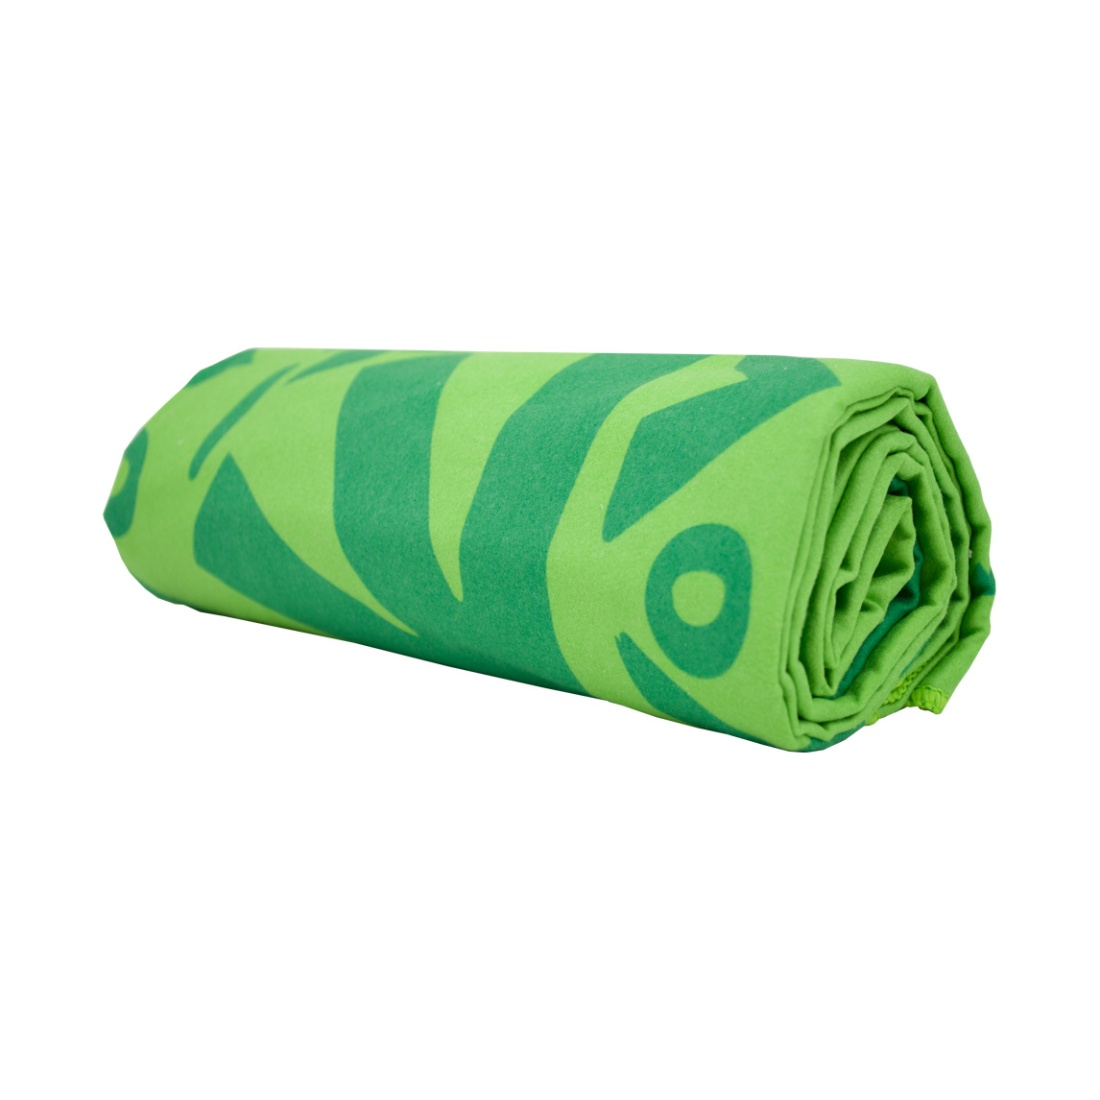 MICROFIBER MULTI-PURPOSE TOWEL GN Rolled Up